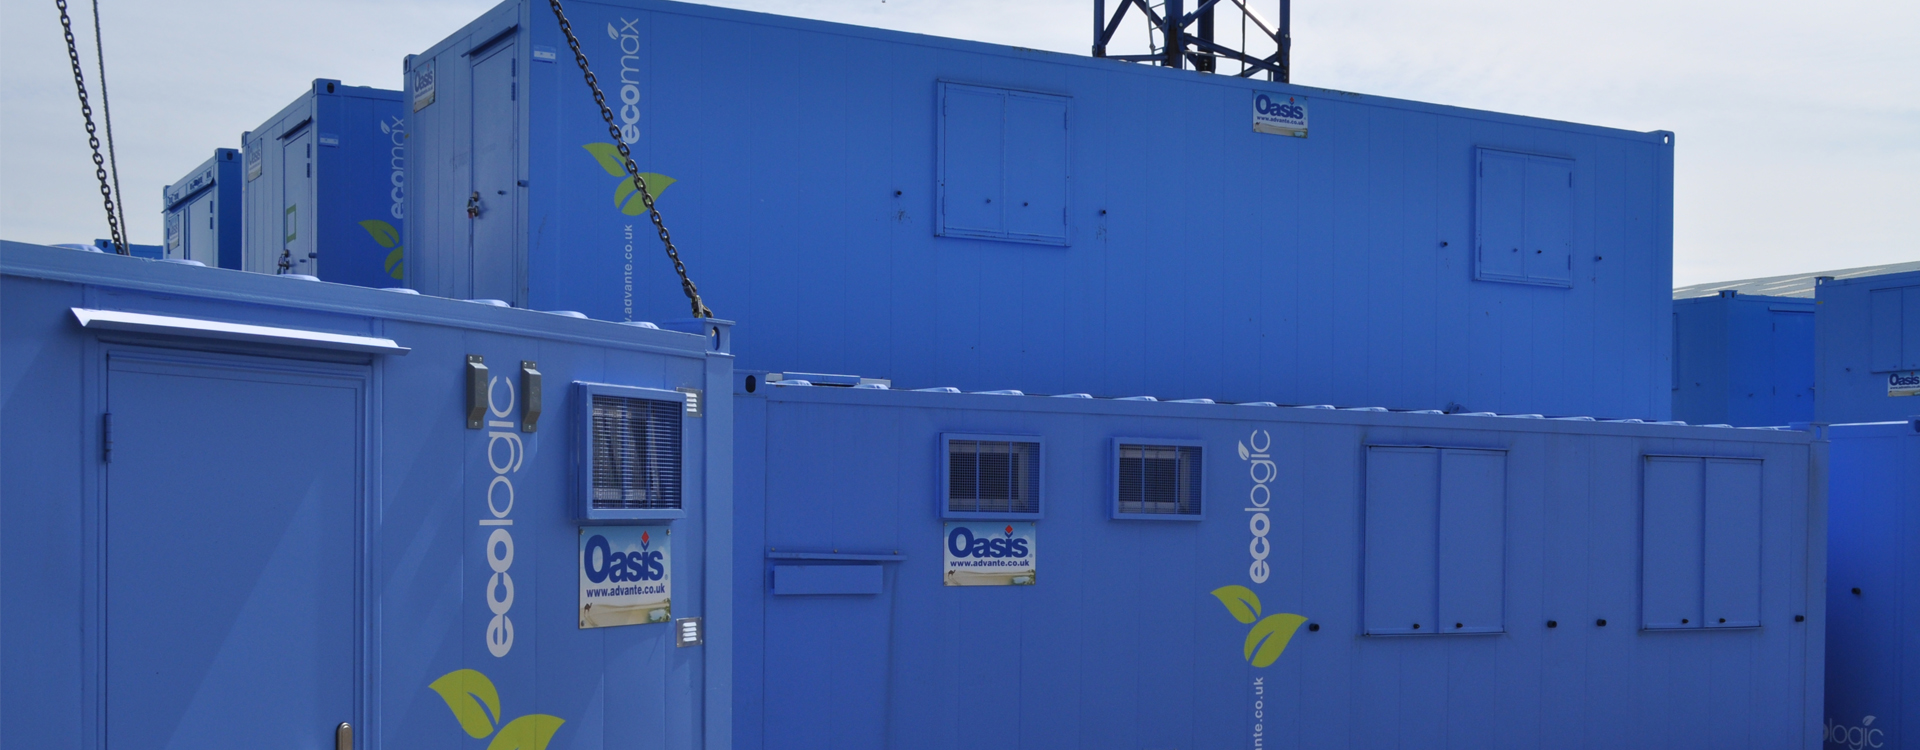 oasis welfare units ecologic ecomax in depot